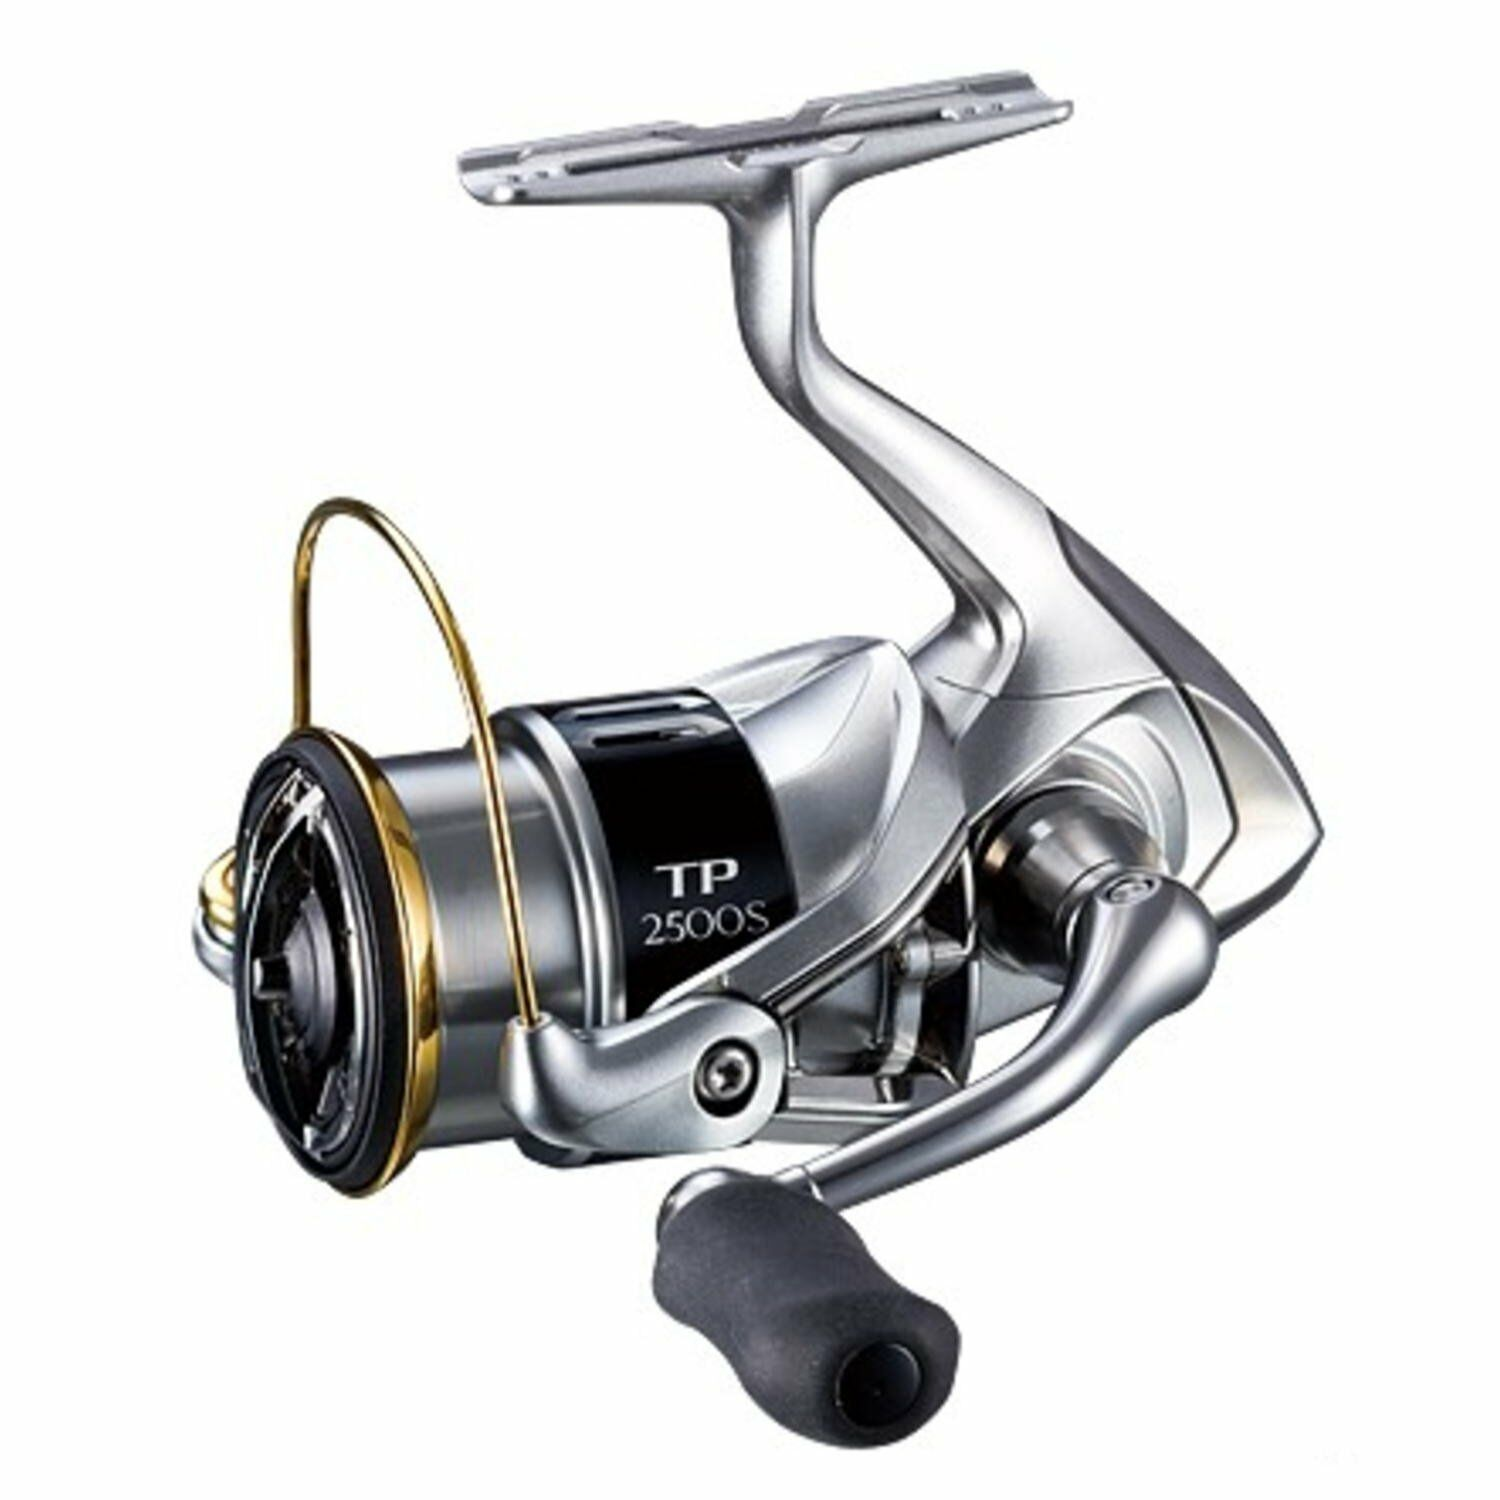 Shimano 15 Twin Power 2500S Spinning Reel 4969363033673